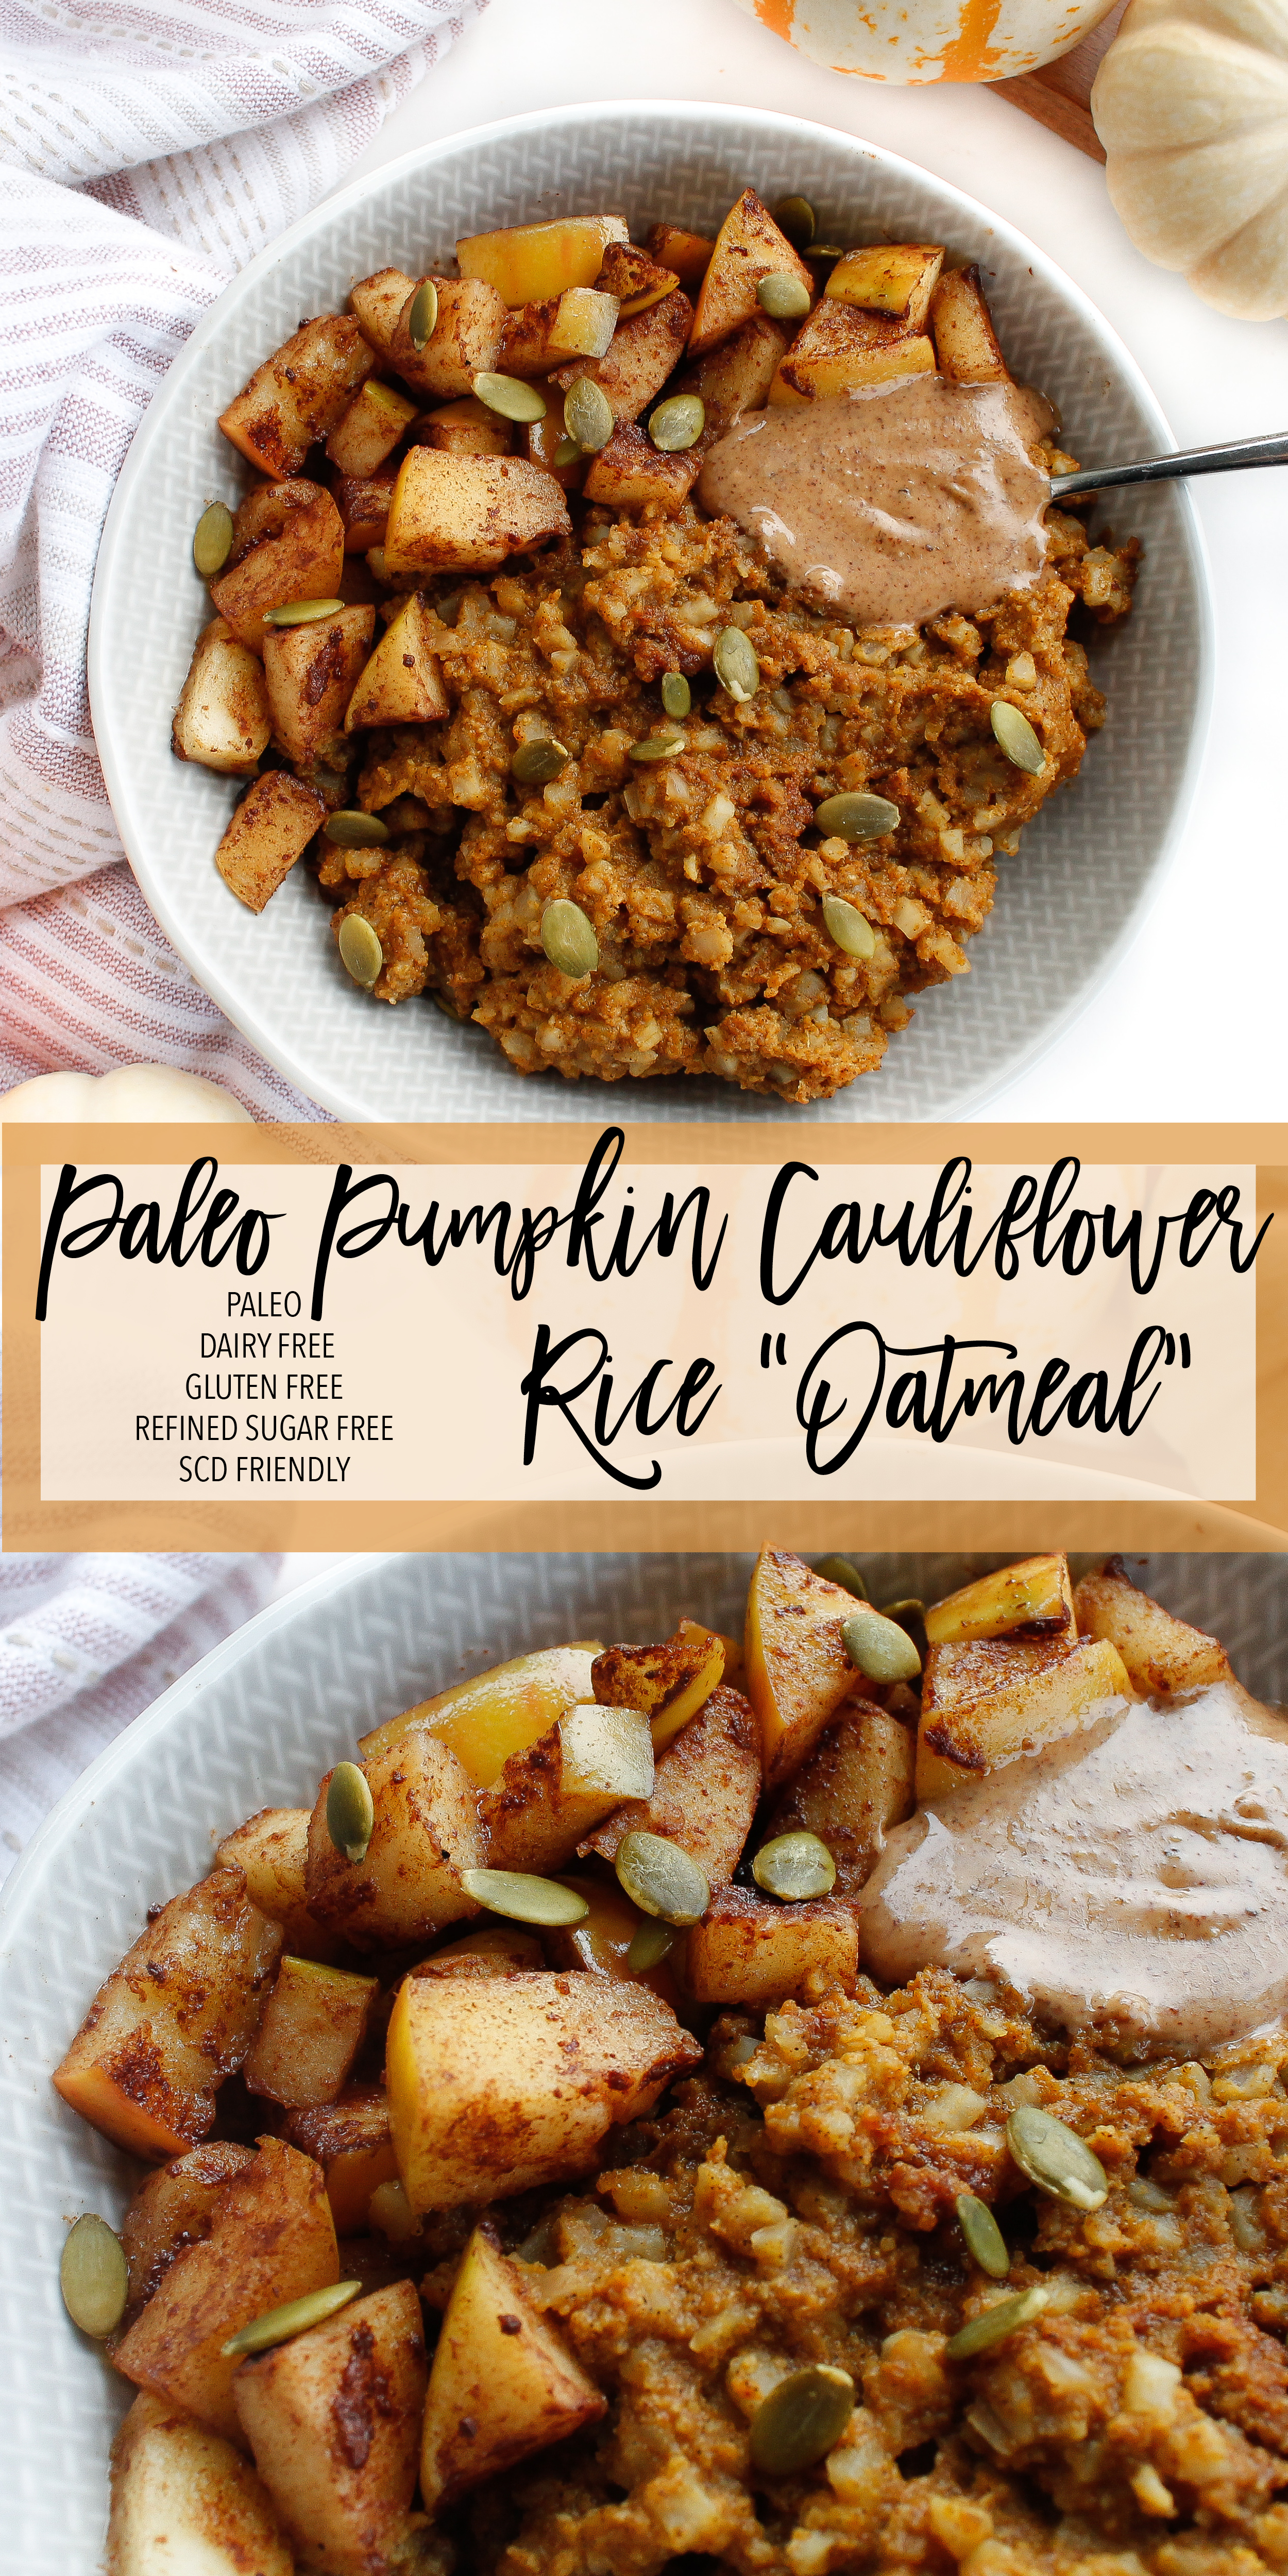 This pumpkin spice cauliflower rice oatmeal is the perfect healthy breakfast recipe to keep you cozy this fall! It's grain free, gluten free, dairy free and Specific Carbohydrate Diet friendly, making it a great allergy friendly recipe as well. Topped with almond butter and sautéed apples? It's satisfying AND delicious! Click through to try the recipe for yourself! #paleorecipes #specificcarbohydratediet #grainfree